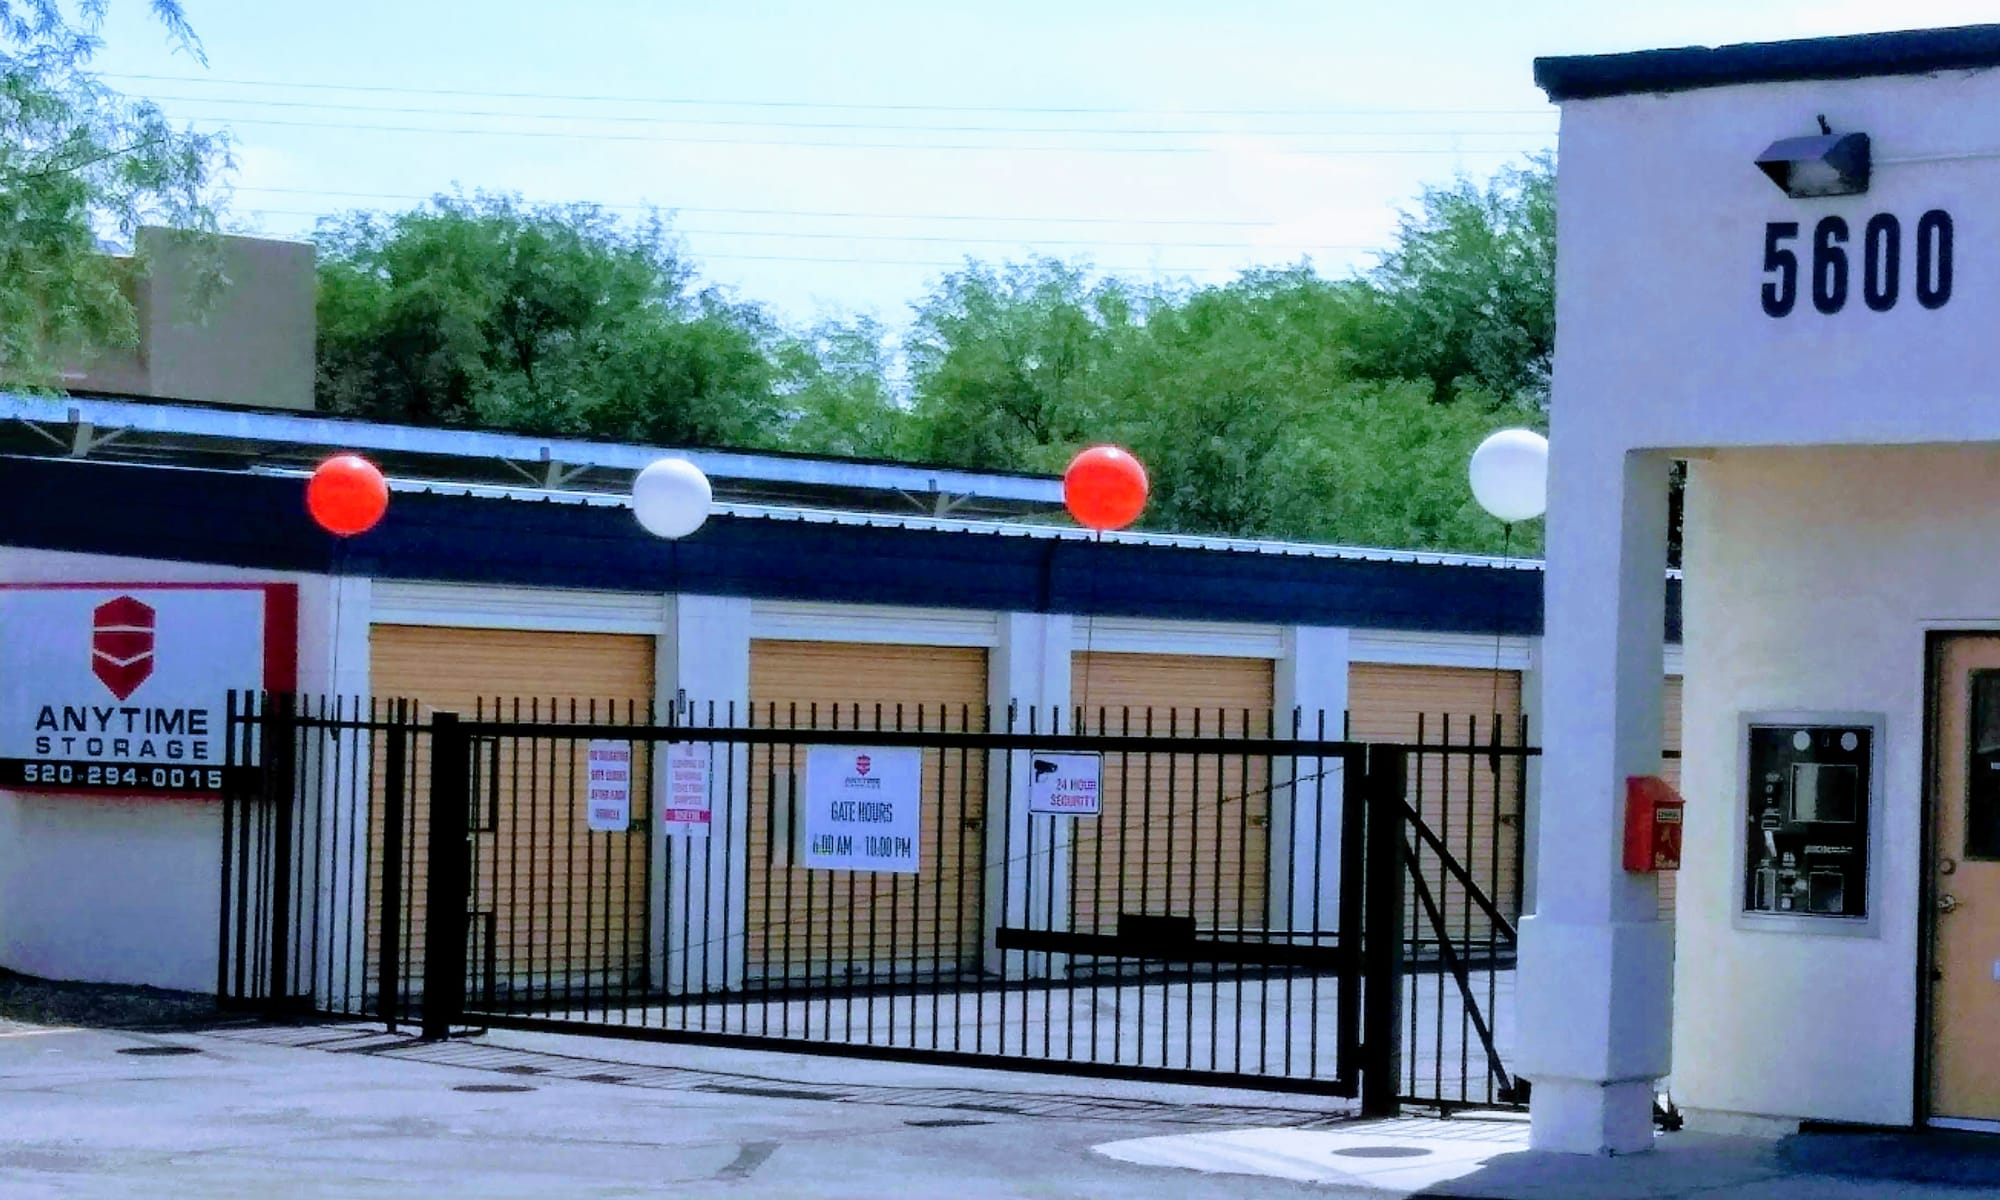 Self storage in Tucson AZ